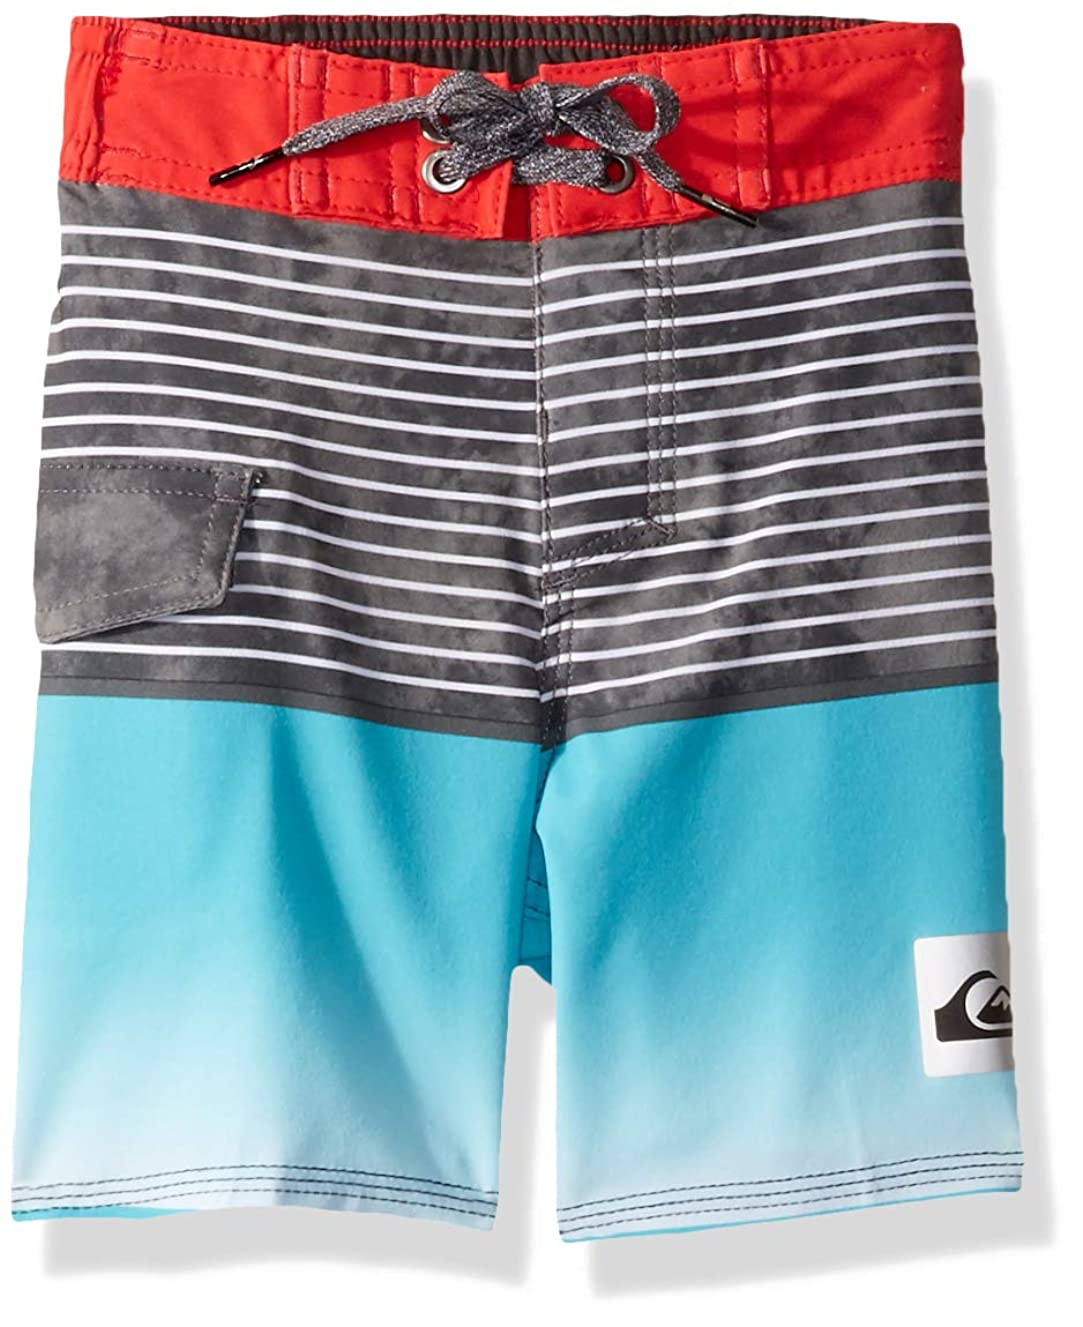 Quiksilver Little Highline Slab Boy 14 Boardshort Swim Trunk